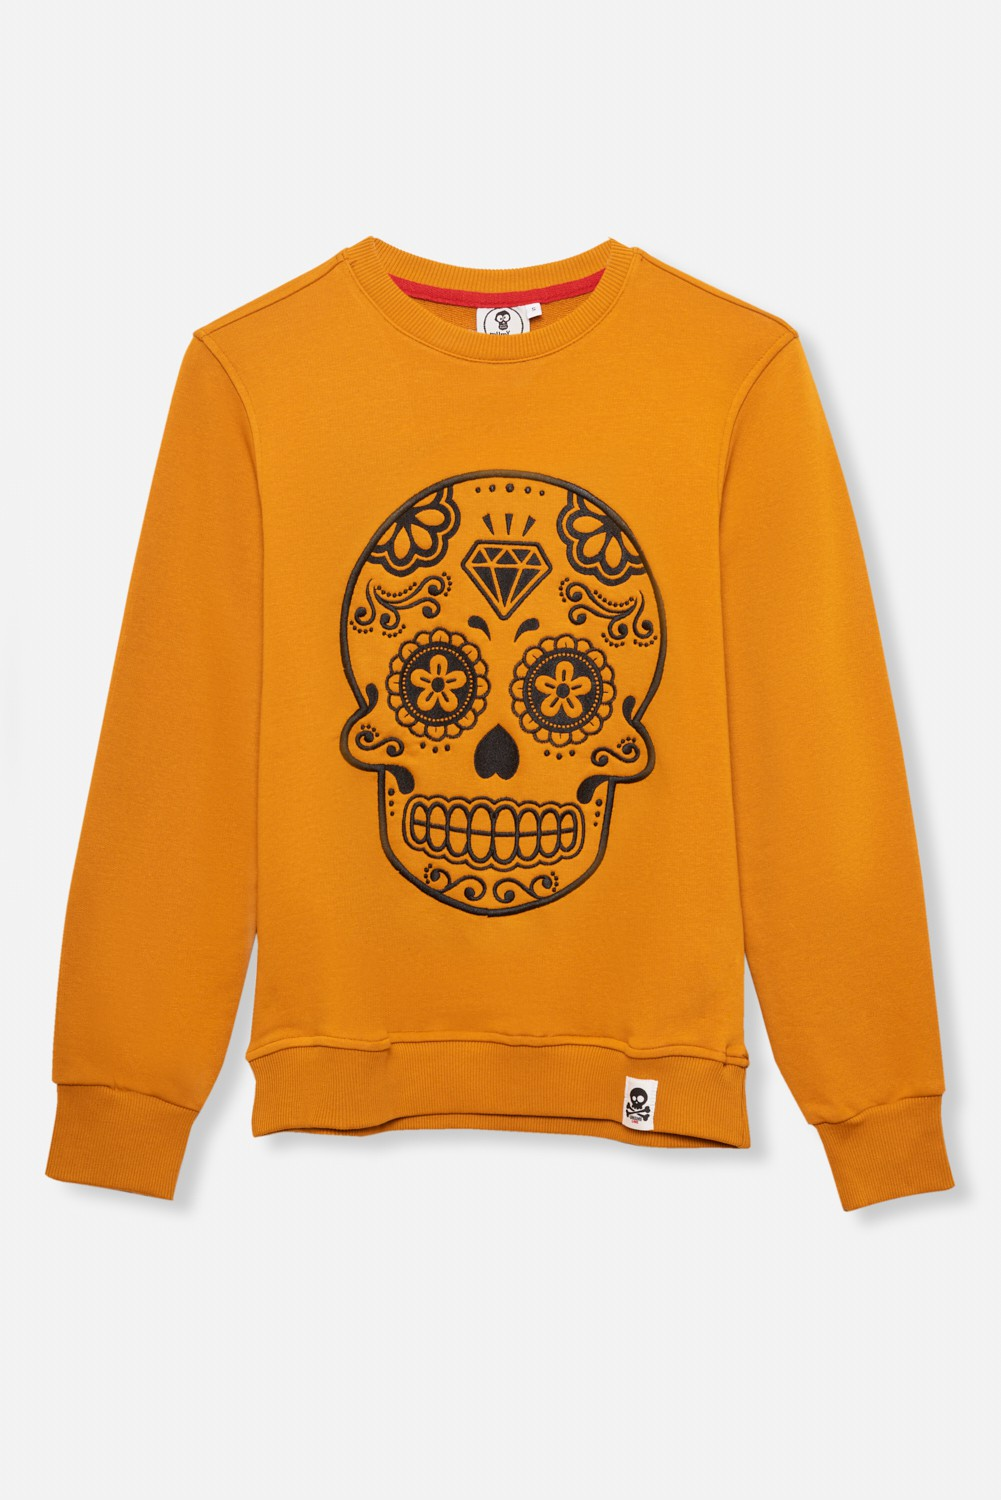 ADULT´S EMBROIDERED JERSEY UMAMI LINE CATRINA DIAMOND